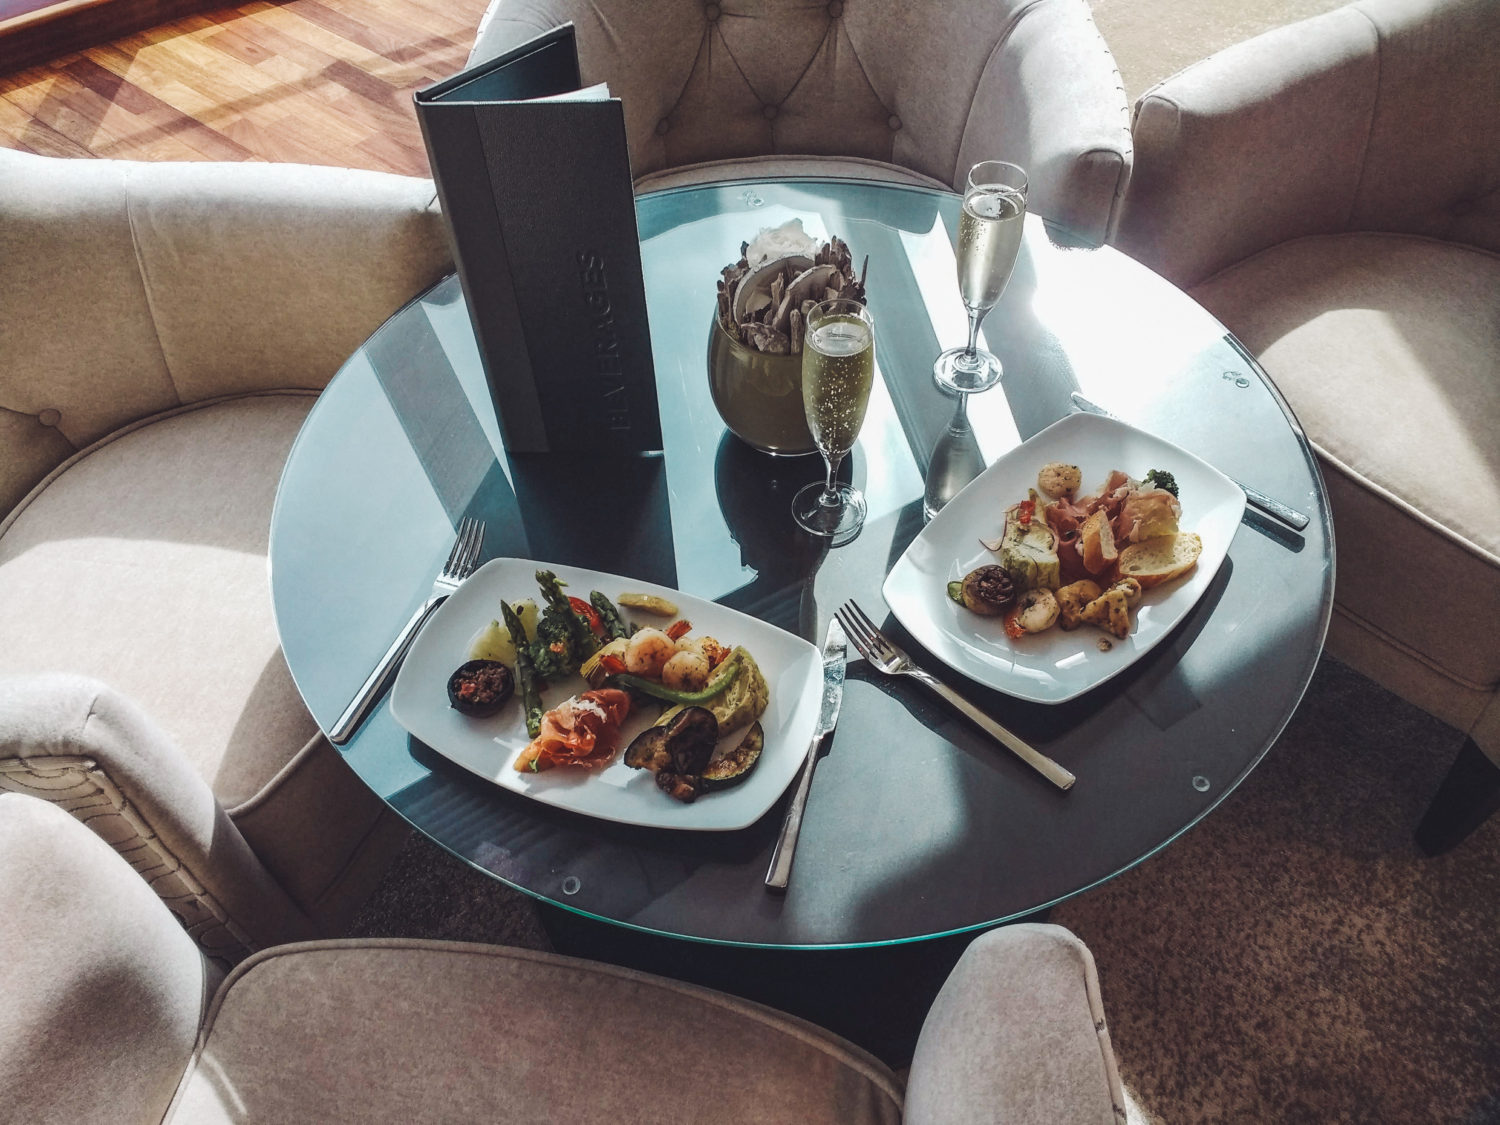 Azamara Pursuit - tapas in the Living Room